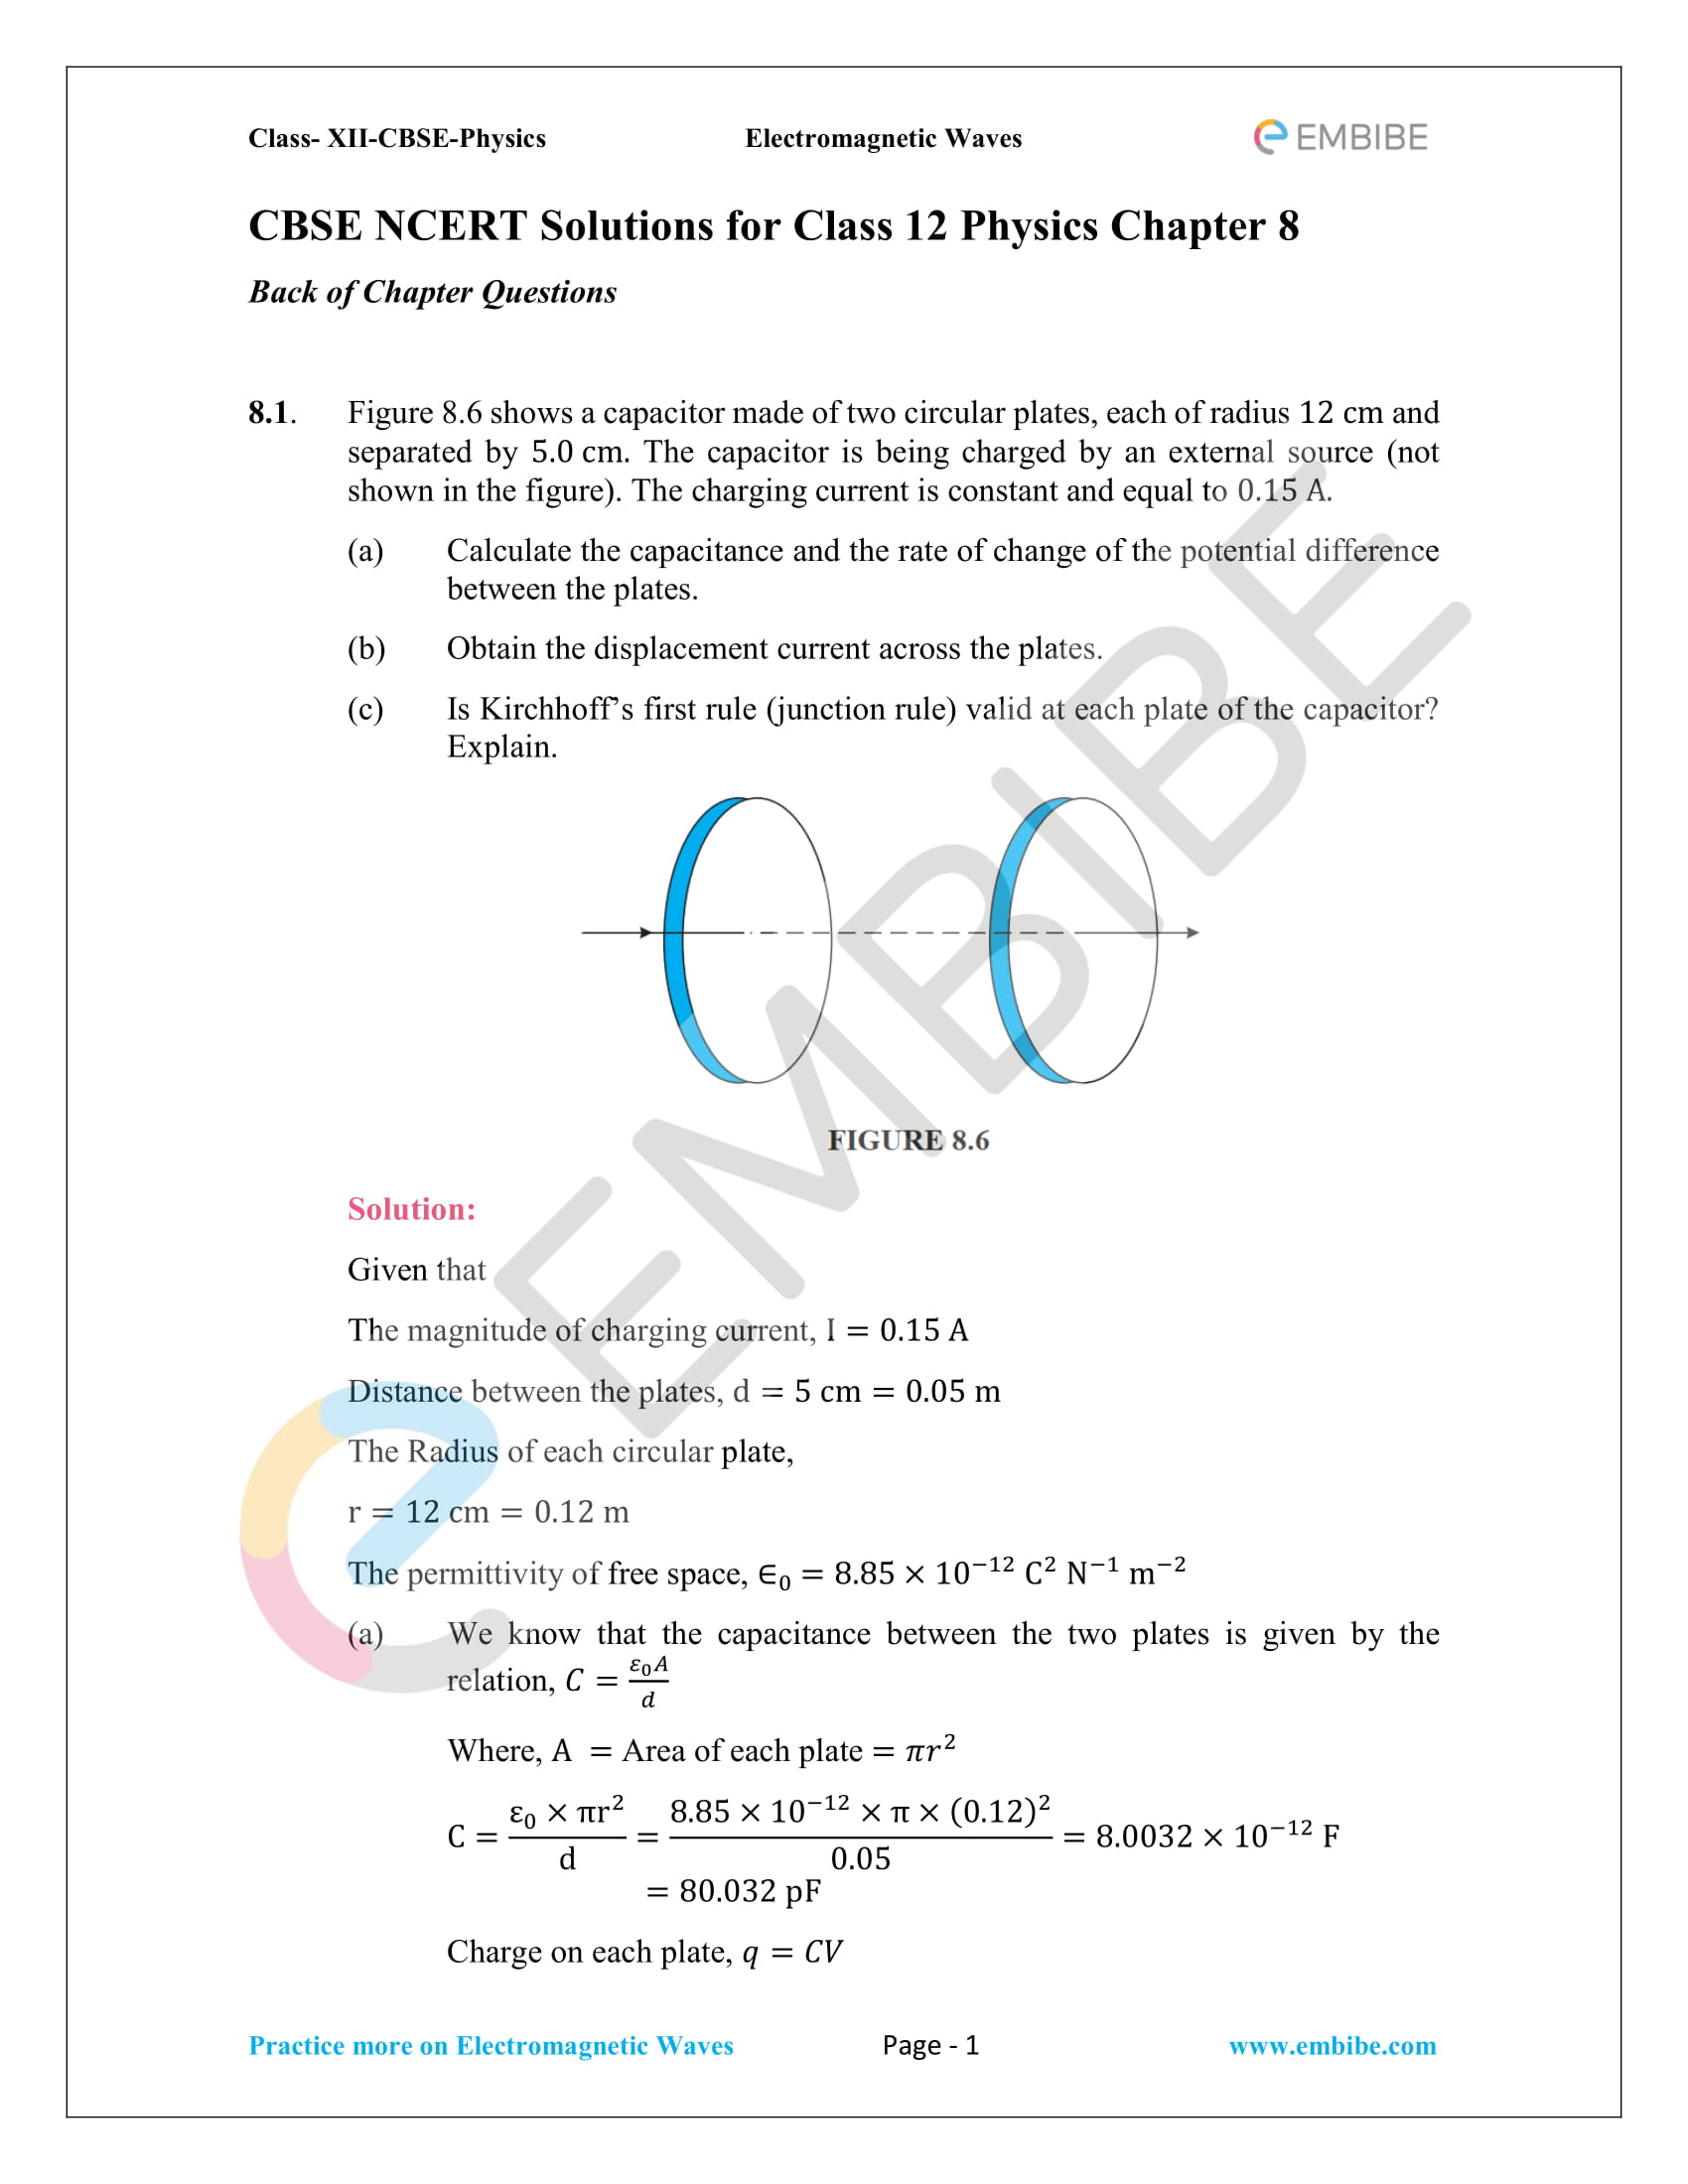 NCERT Solutions for Class 12 Physics Chapter 8 Electromagnetic Waves-01